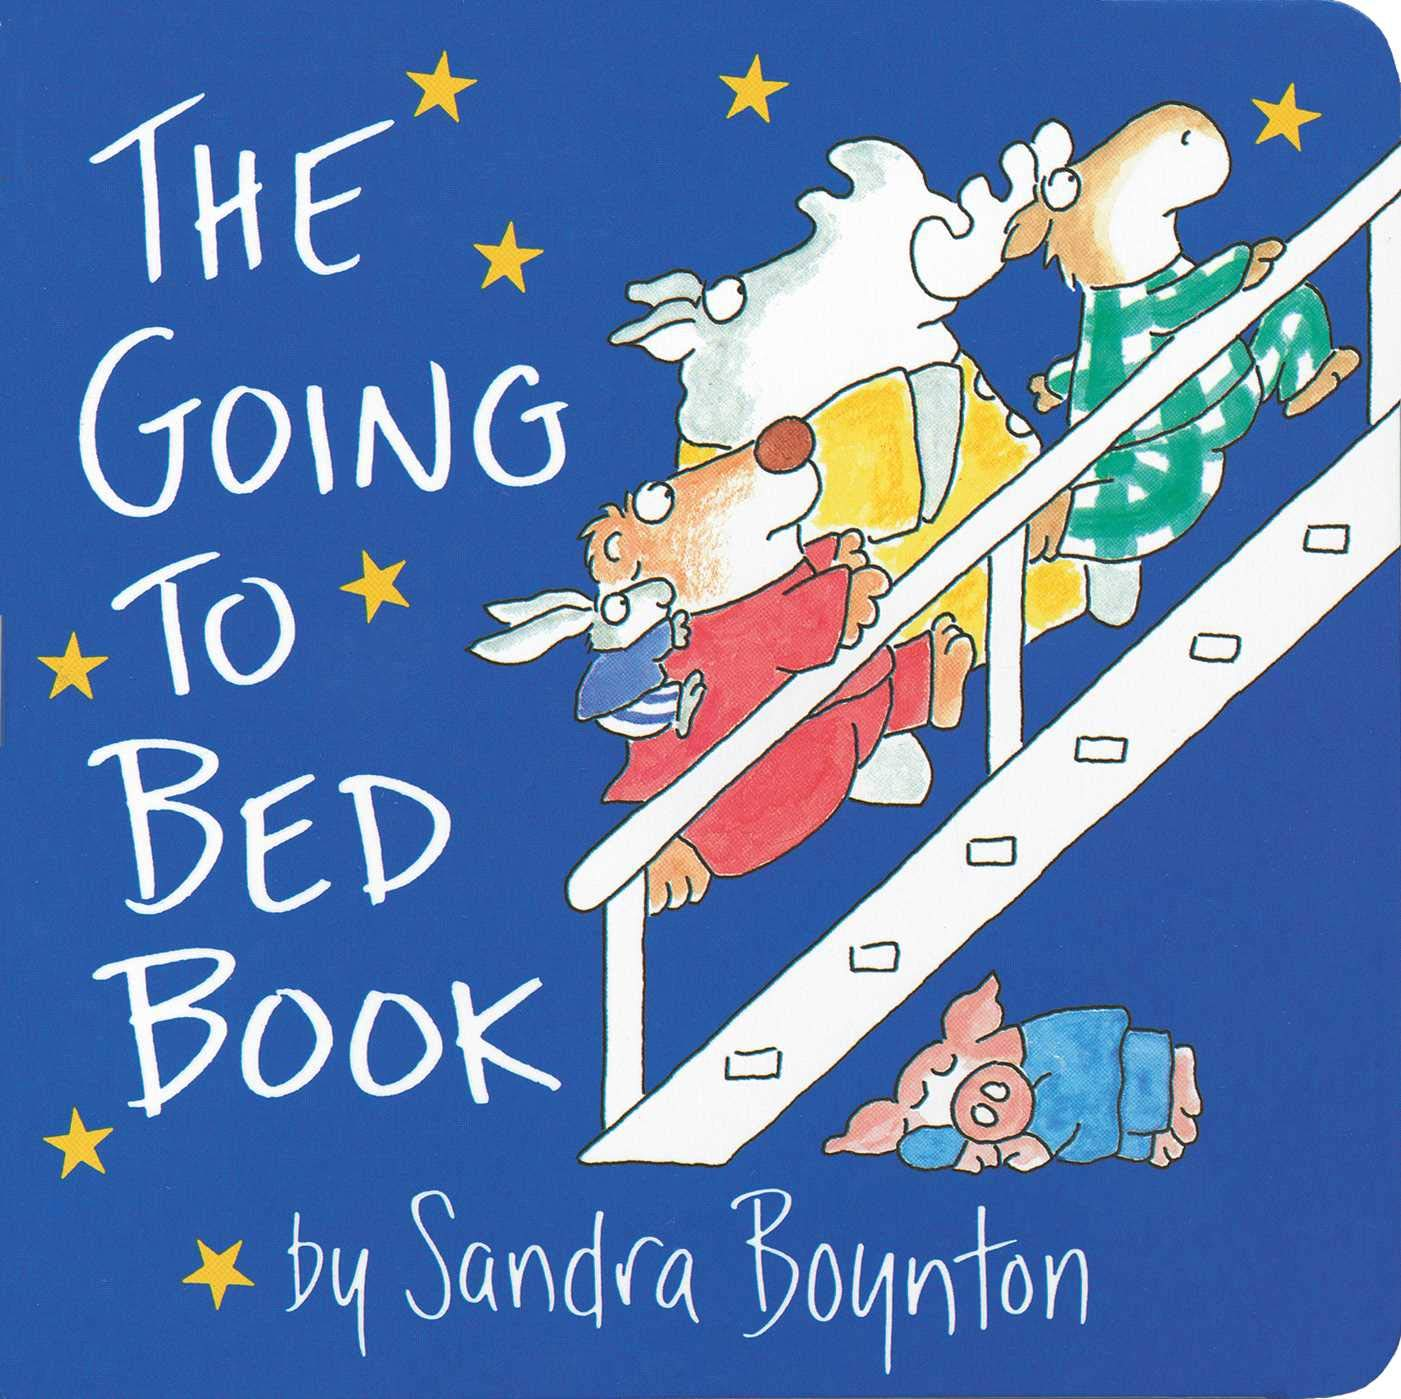 The Going To Bed Book | Bedtime stories | Beanstalk Mums